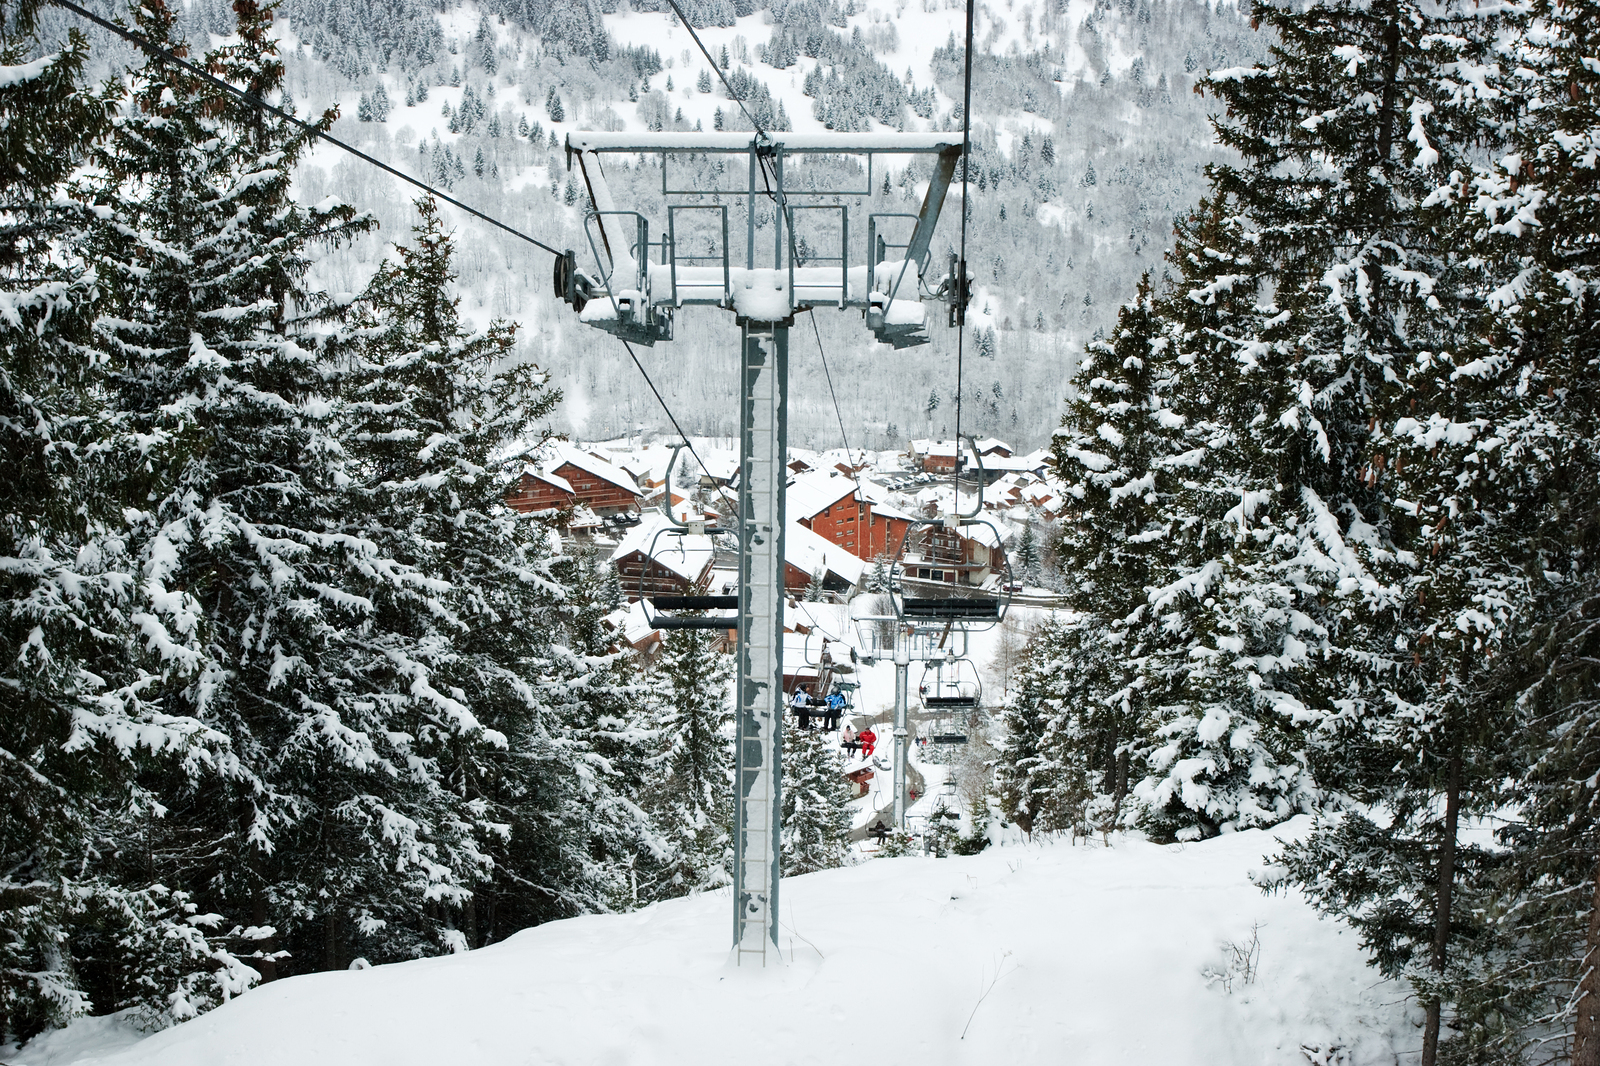 Meribel: The alluring culture of the Haute-Savoie